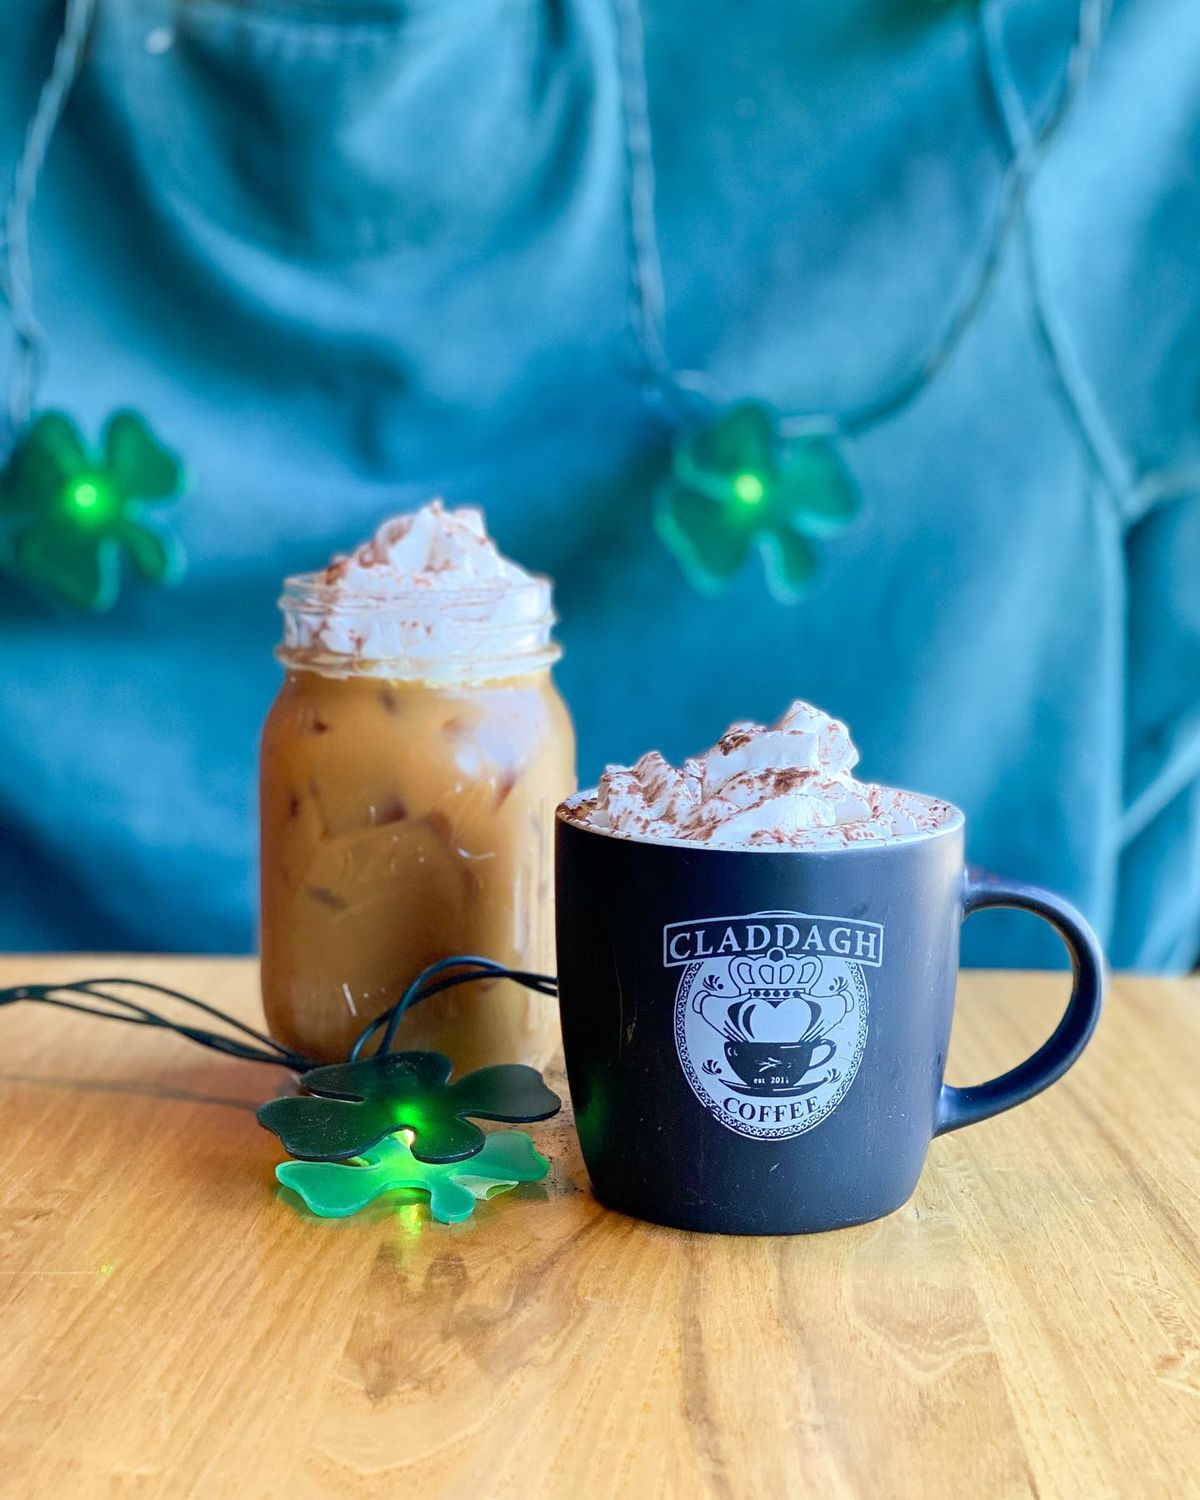 Iced latte in a jar and hot latte in a black branded Claddagh Coffee mug. Both are topped with whipped cream and dusted cocoa powder.